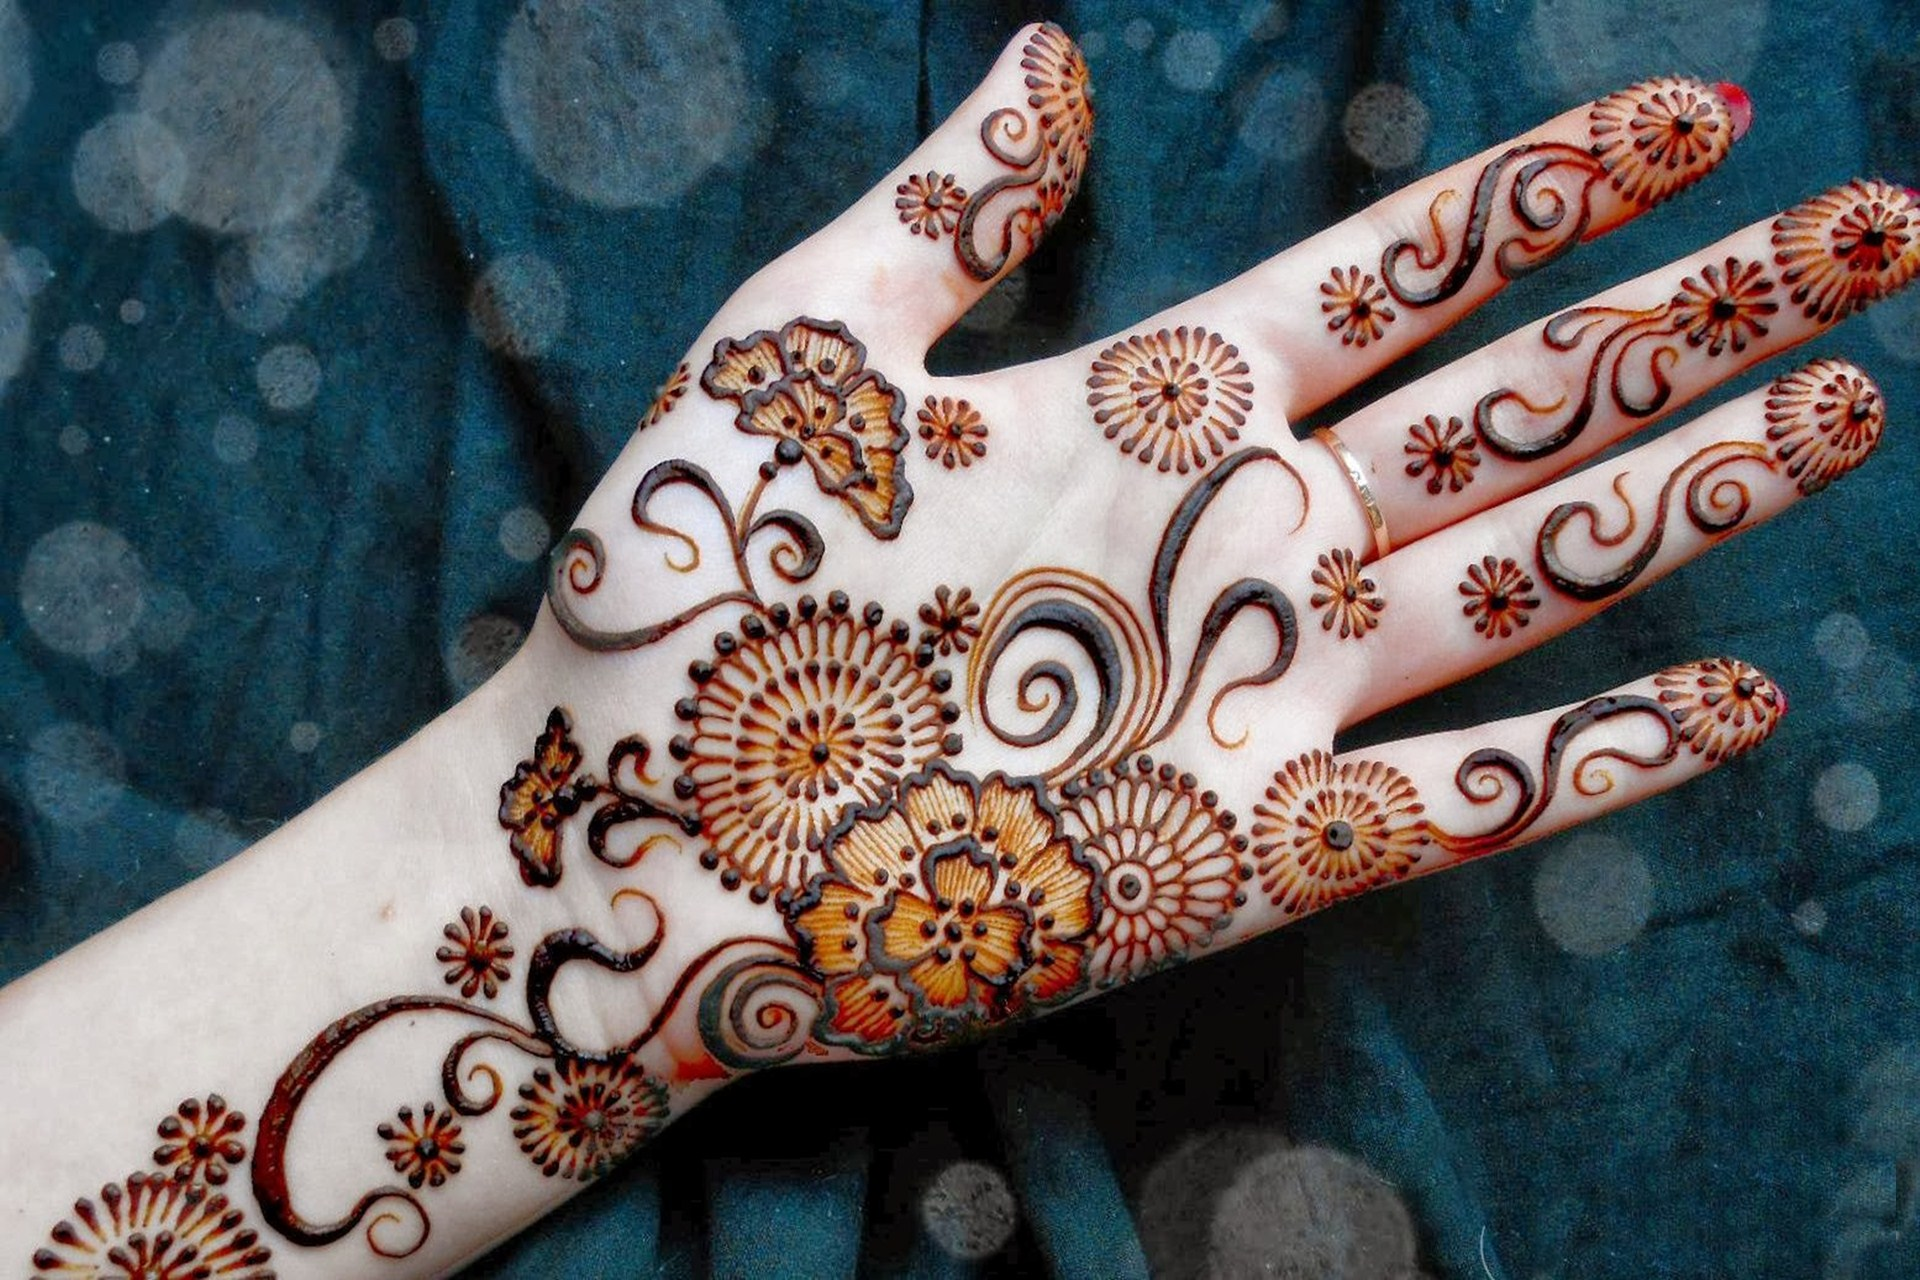 Mehndi Designs Hd Images : Mehndi design on hand full hd wallpaper and background image